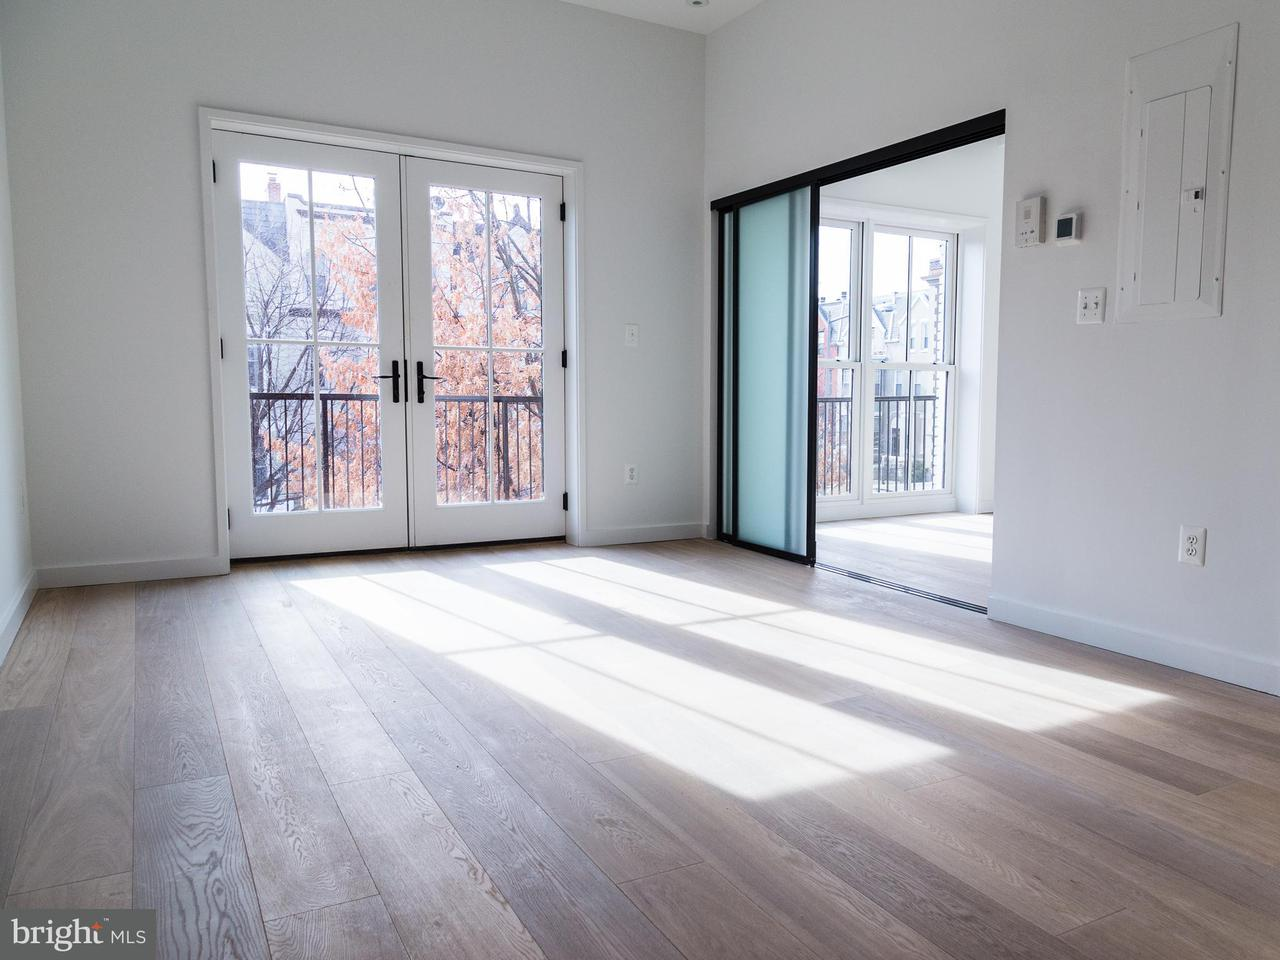 Other Residential for Rent at 1443 Euclid St NW #5 Washington, District Of Columbia 20009 United States